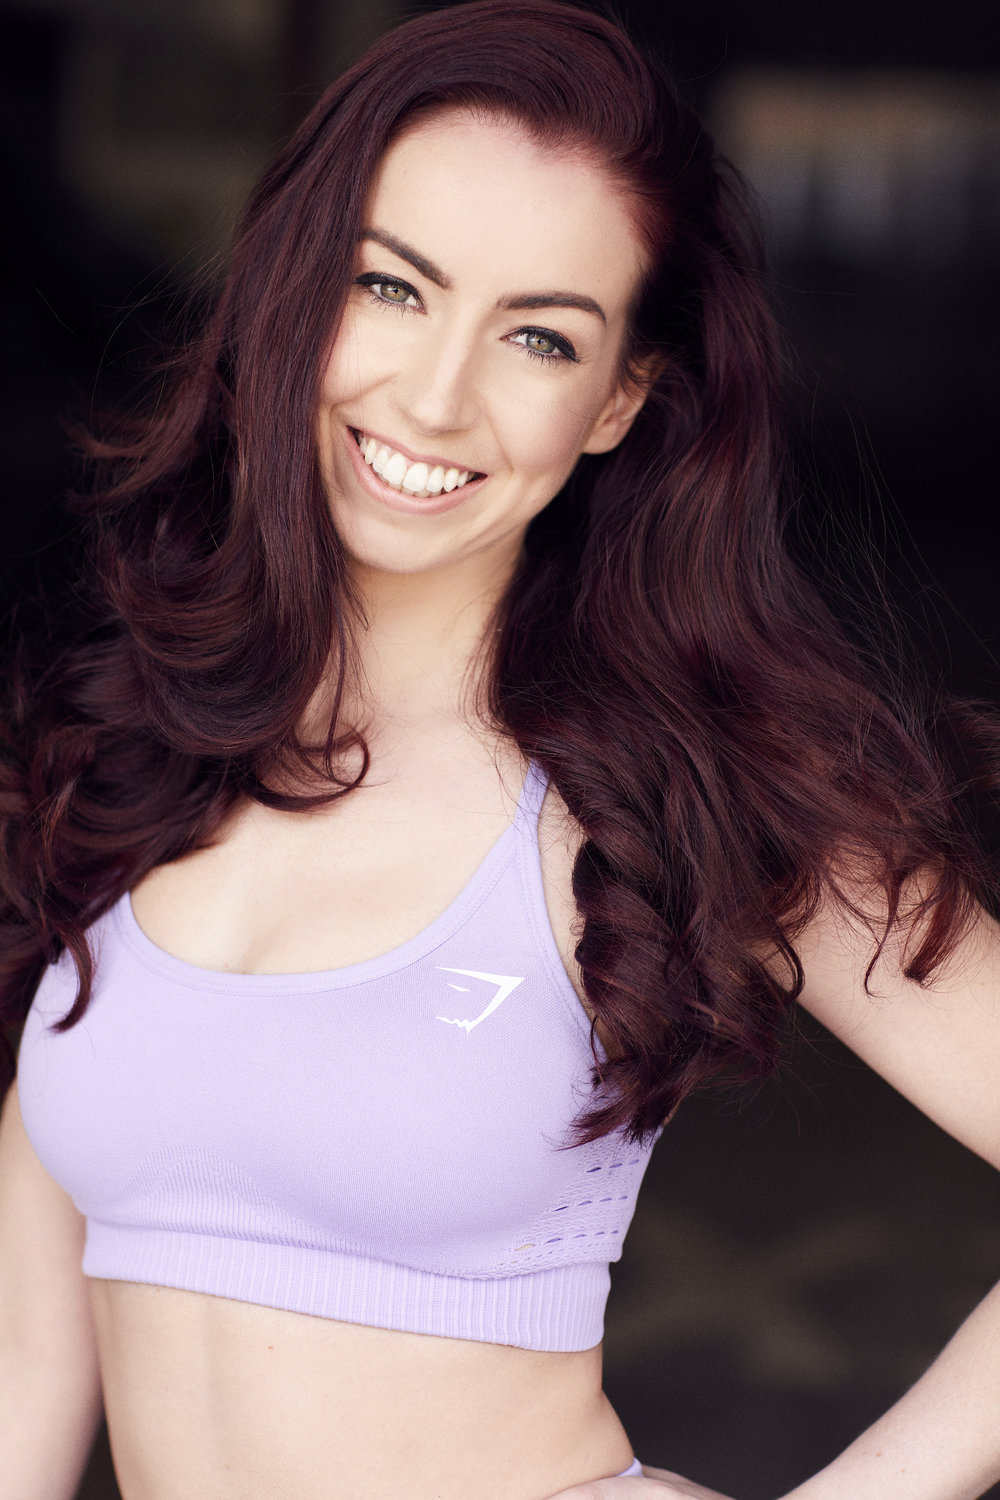 I'm Sophie Campbell - Professional dancer, qualified yoga instructor, certified personal trainer, nutrition advisor – and founder of Mission.